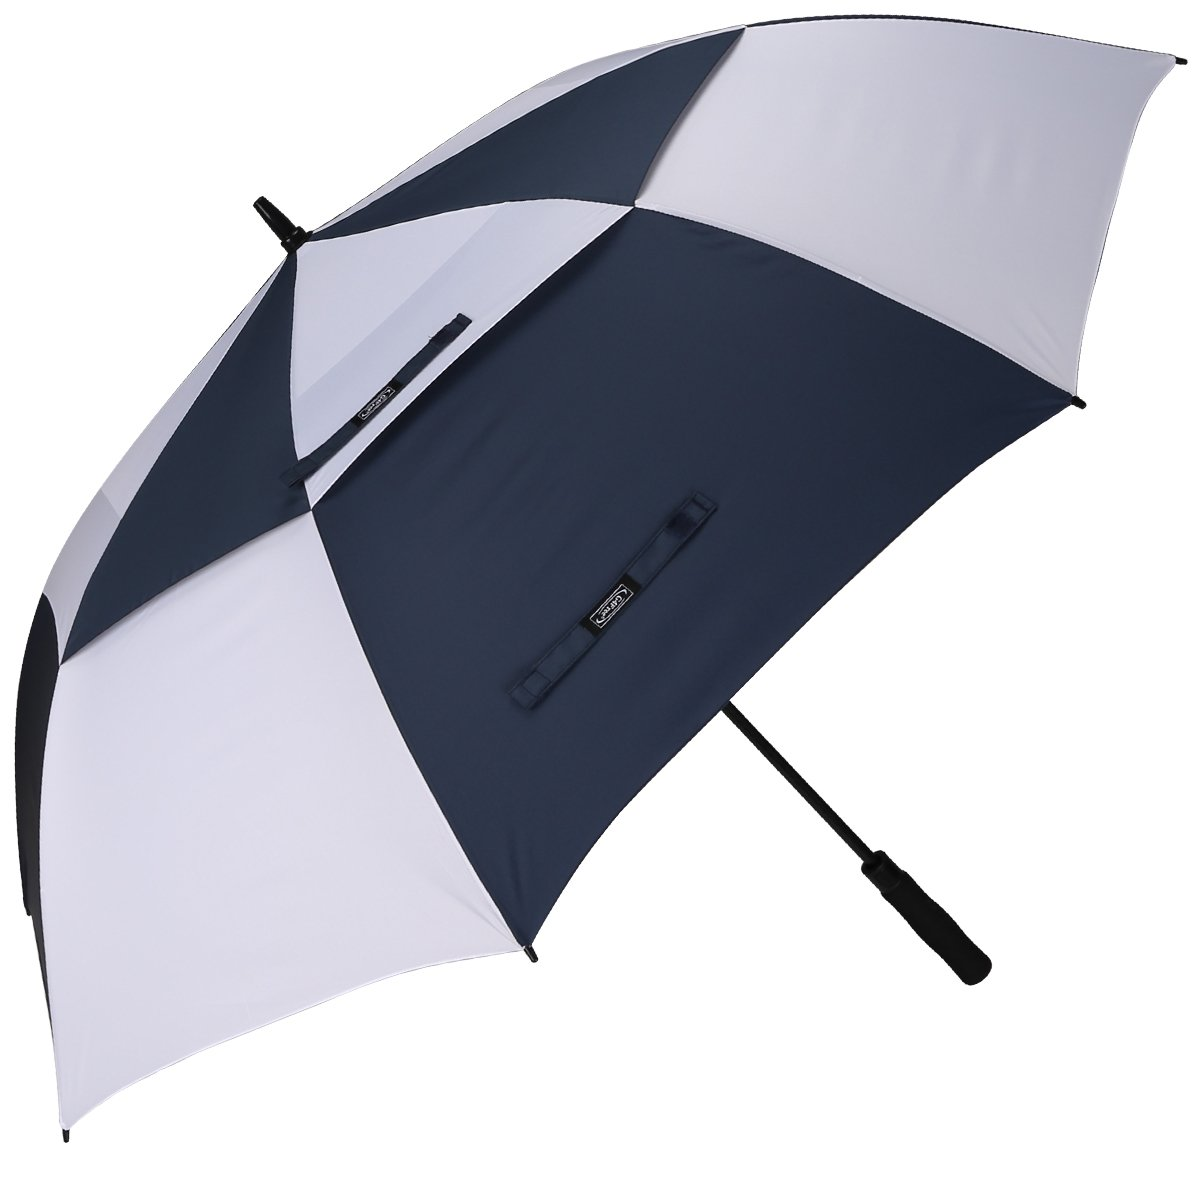 G4Free Golf Umbrella Extra Large 54 Inch Windproof Oversize Automatic Double Canopy Vented Waterproof Stick Umbrellas (Navy/White) by G4Free